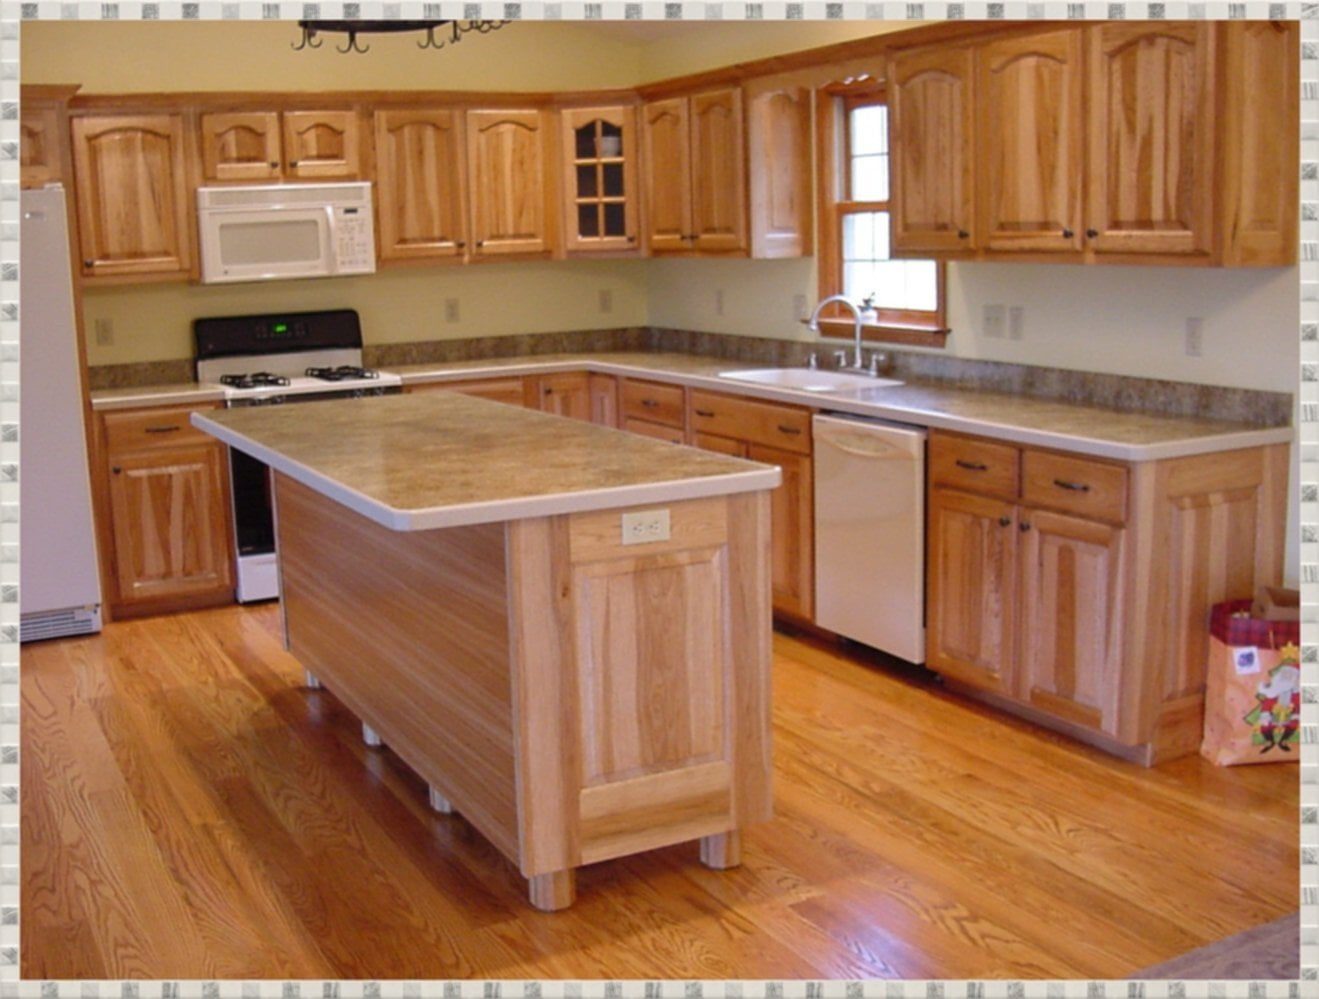 Kitchen Countertop Laminate Sheets